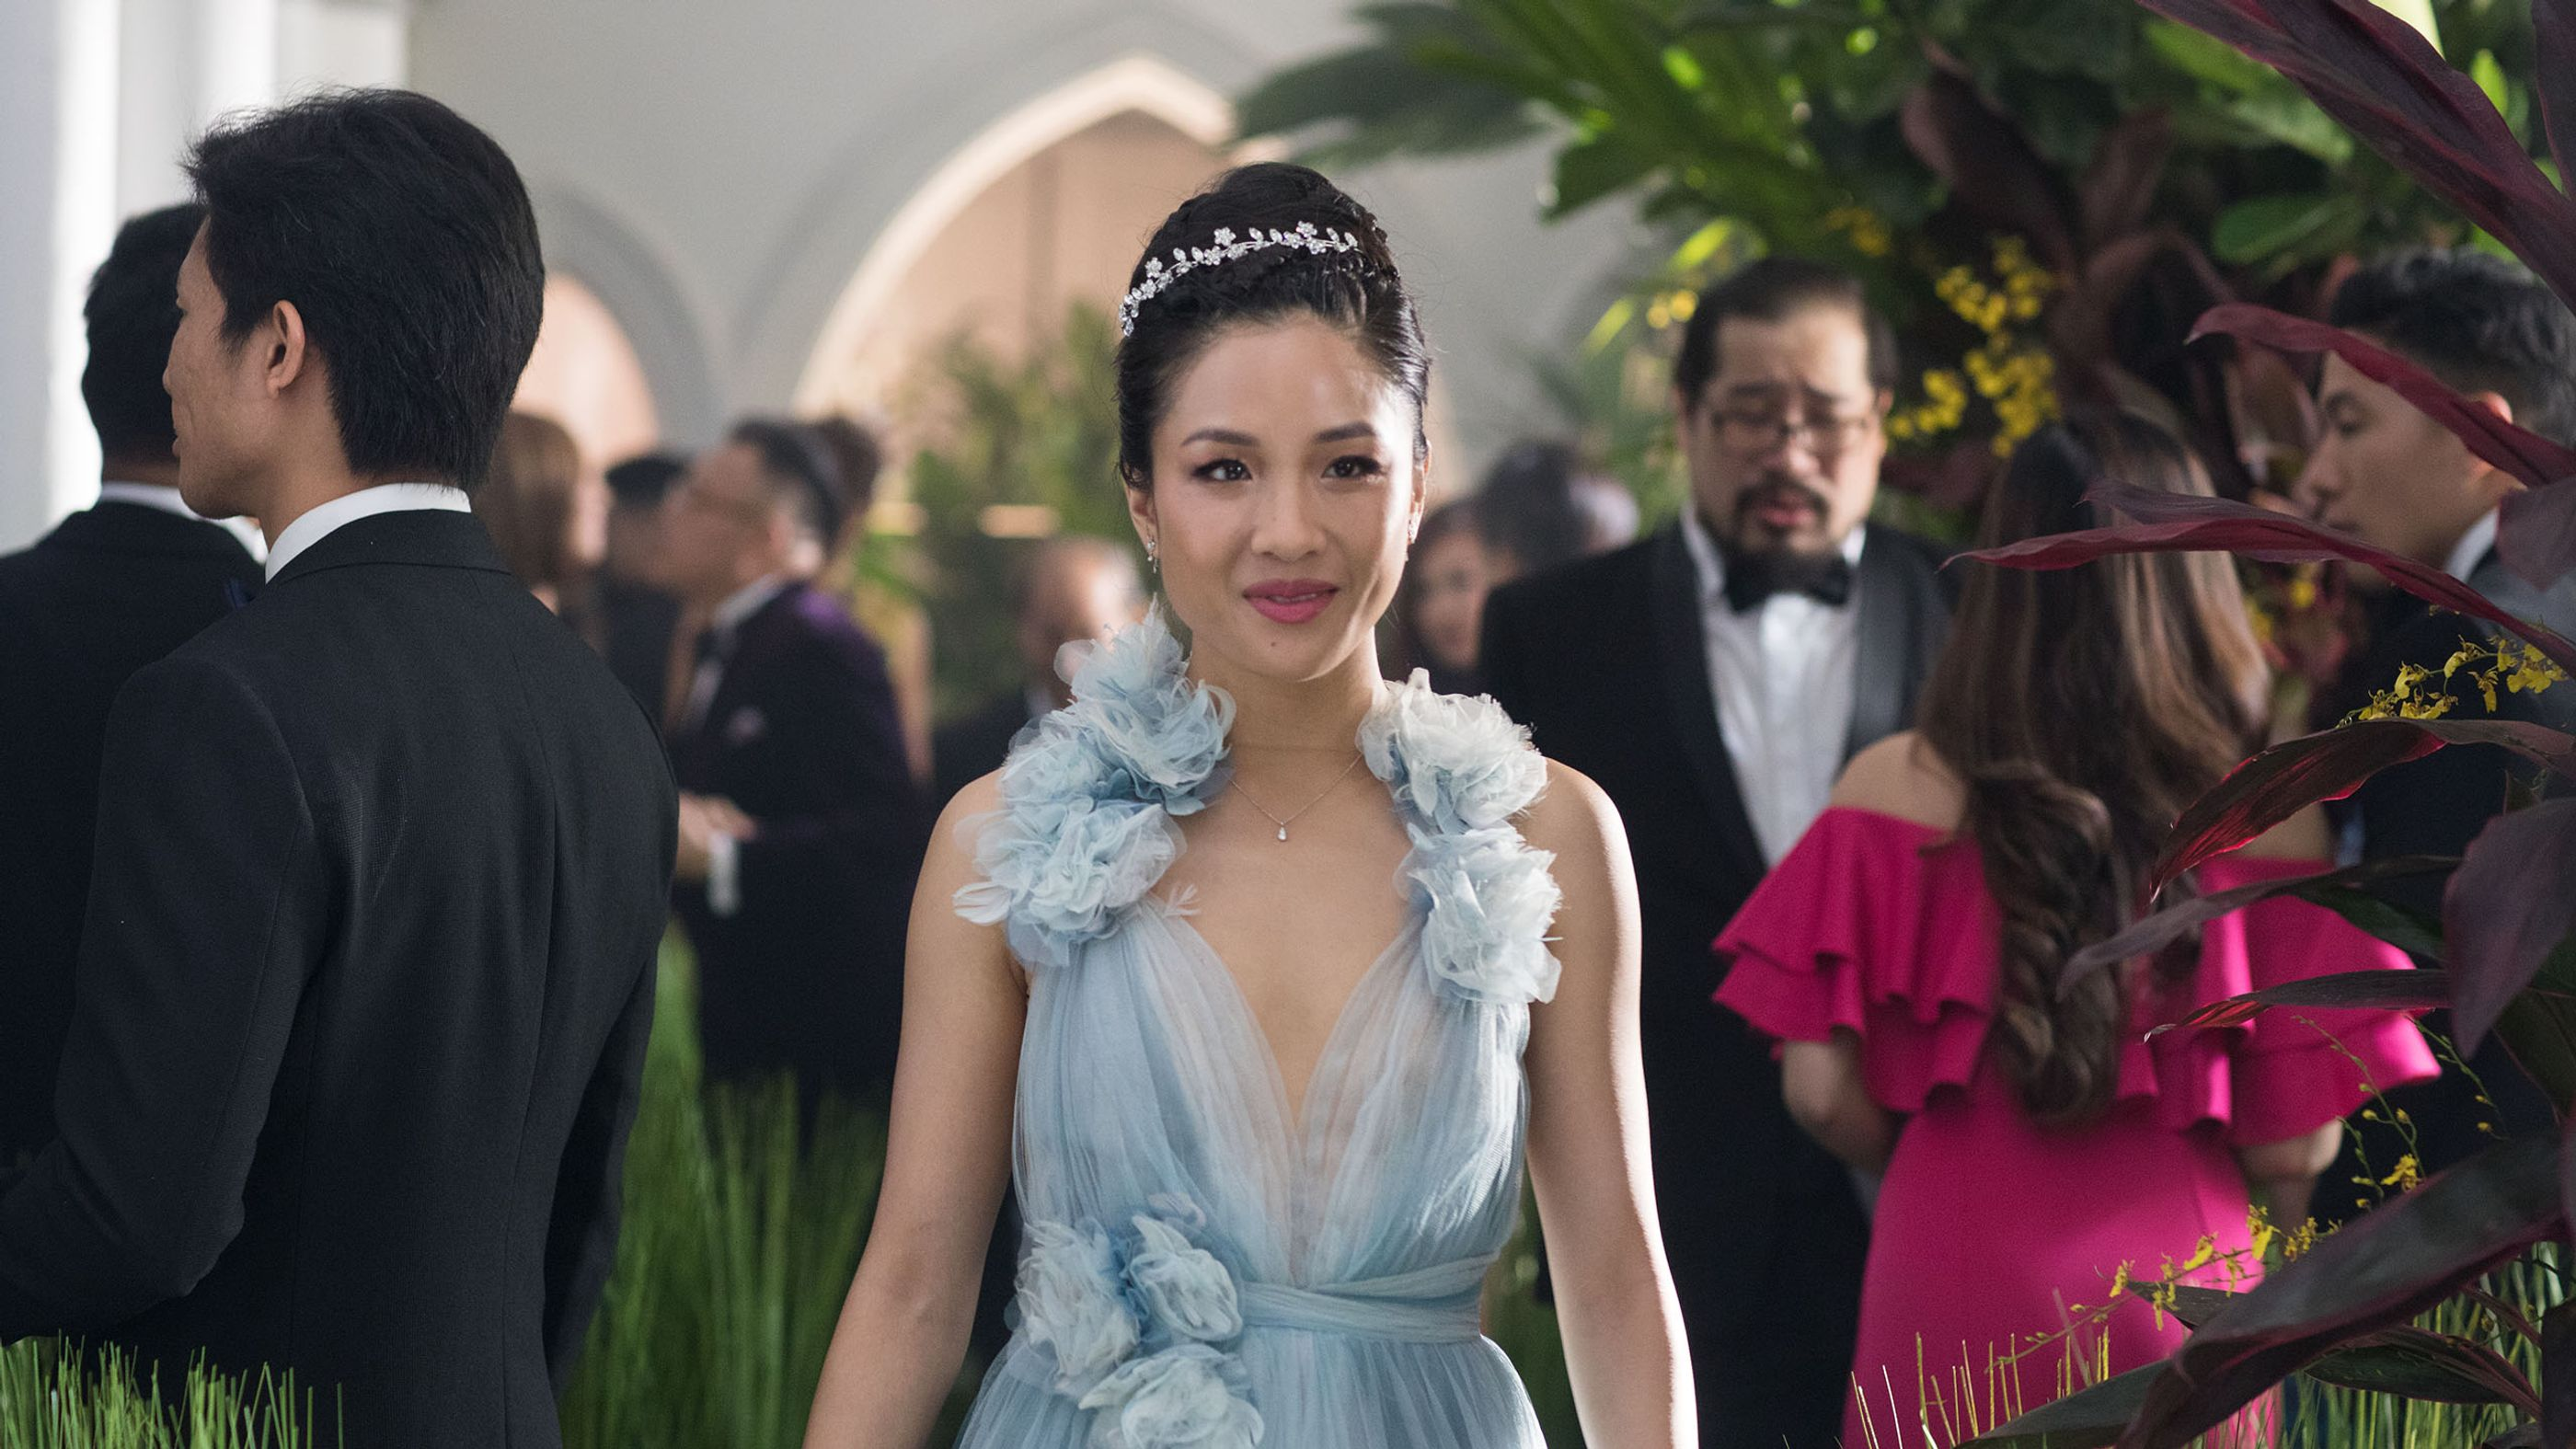 Bernadette Penotti crazy rich asians trailer 2